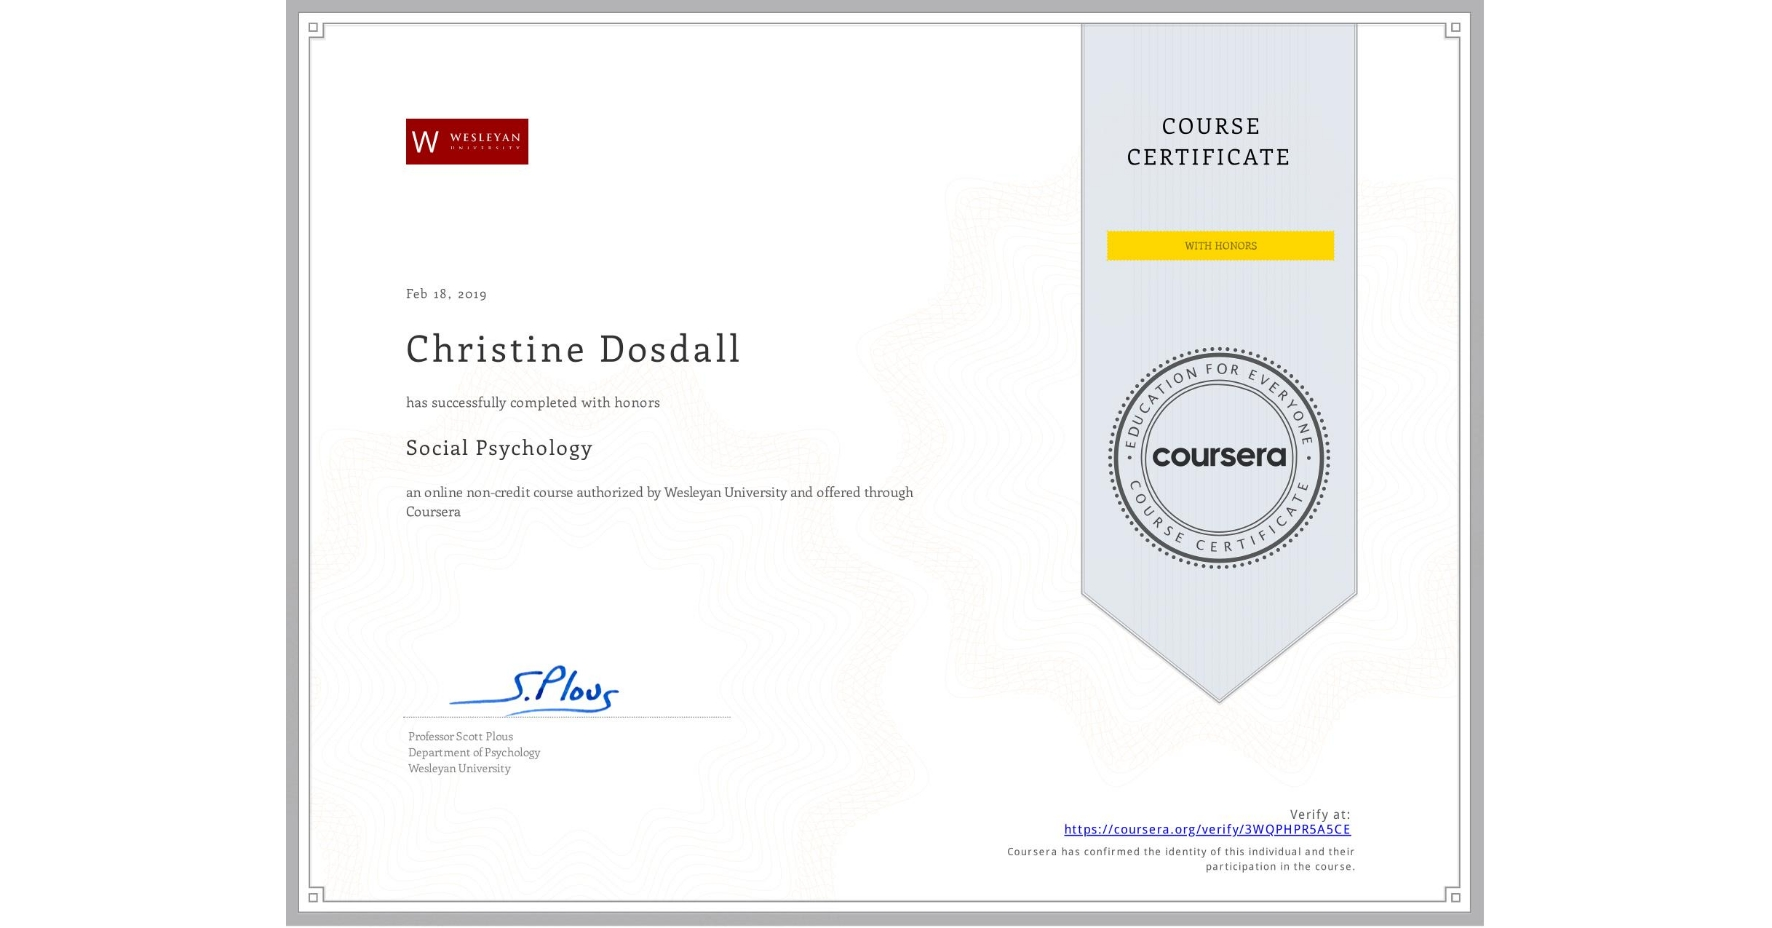 View certificate for Christine Dosdall, Social Psychology, an online non-credit course authorized by Wesleyan University and offered through Coursera